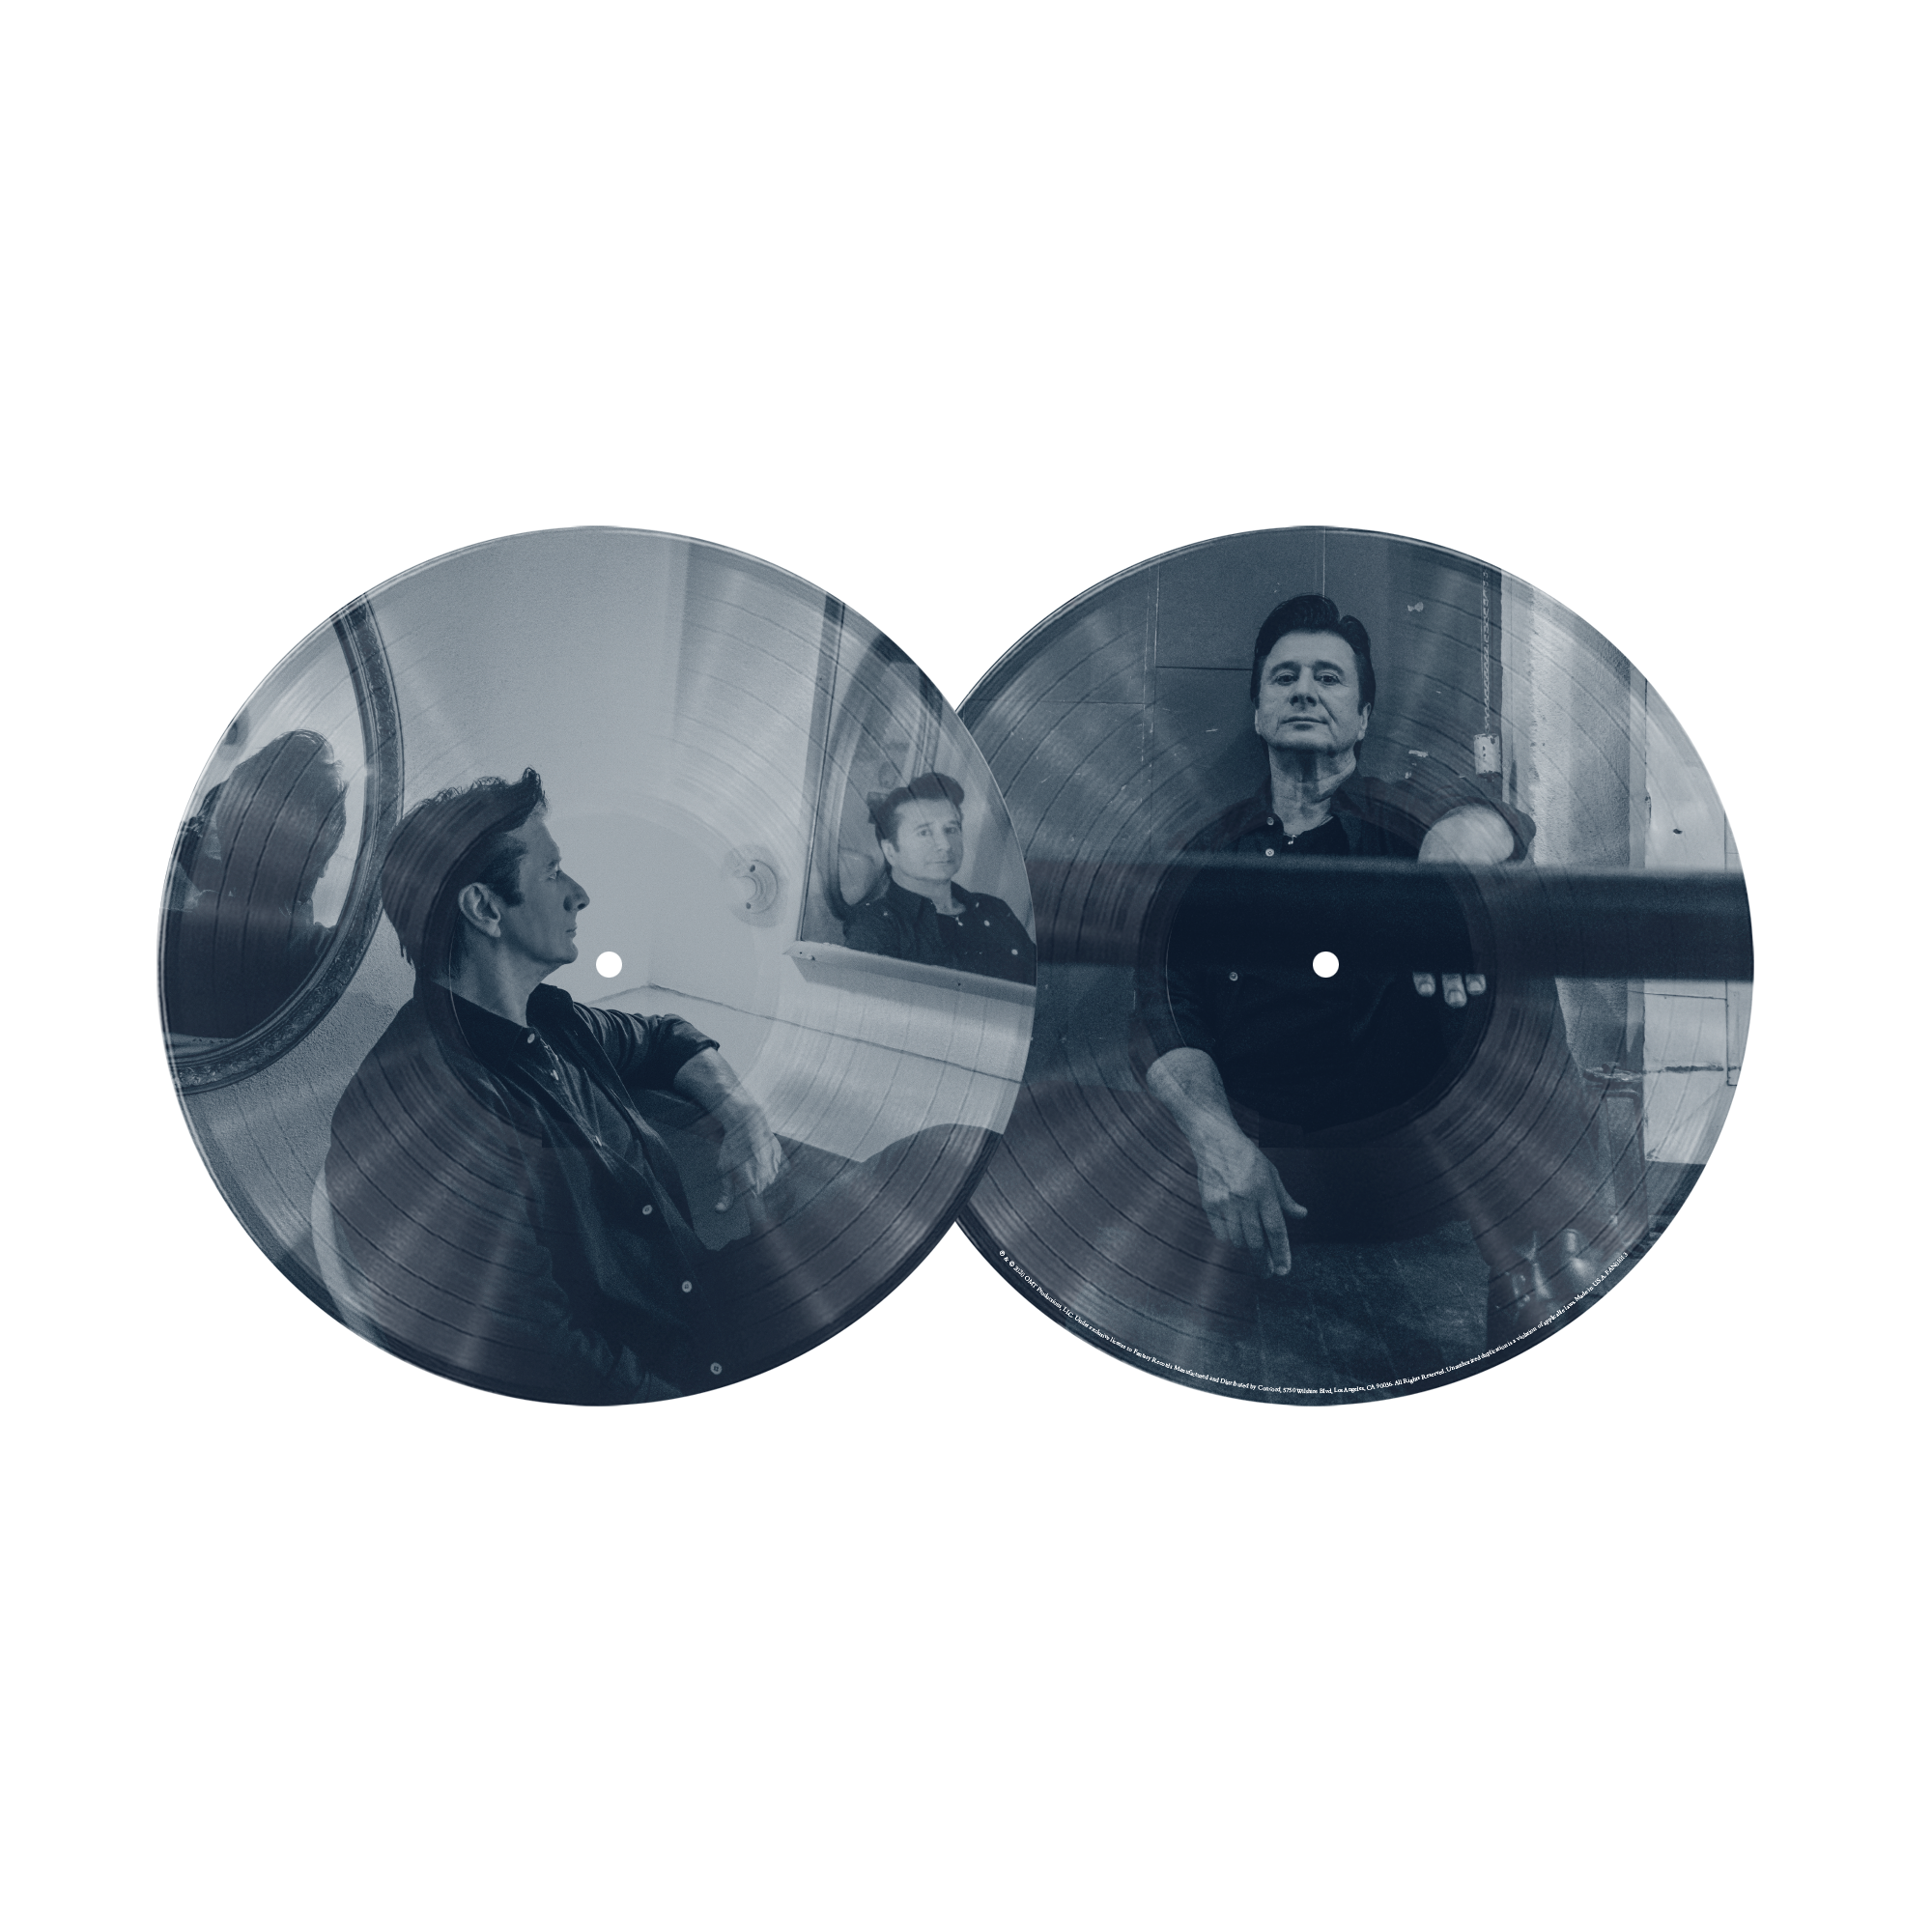 Traces Alternate Versions & Sketches SIGNED or UNSIGNED Deluxe 2xLP Translucent Blue Vinyl w/ Picture Disc (Only 700 available) + 2D Magnet